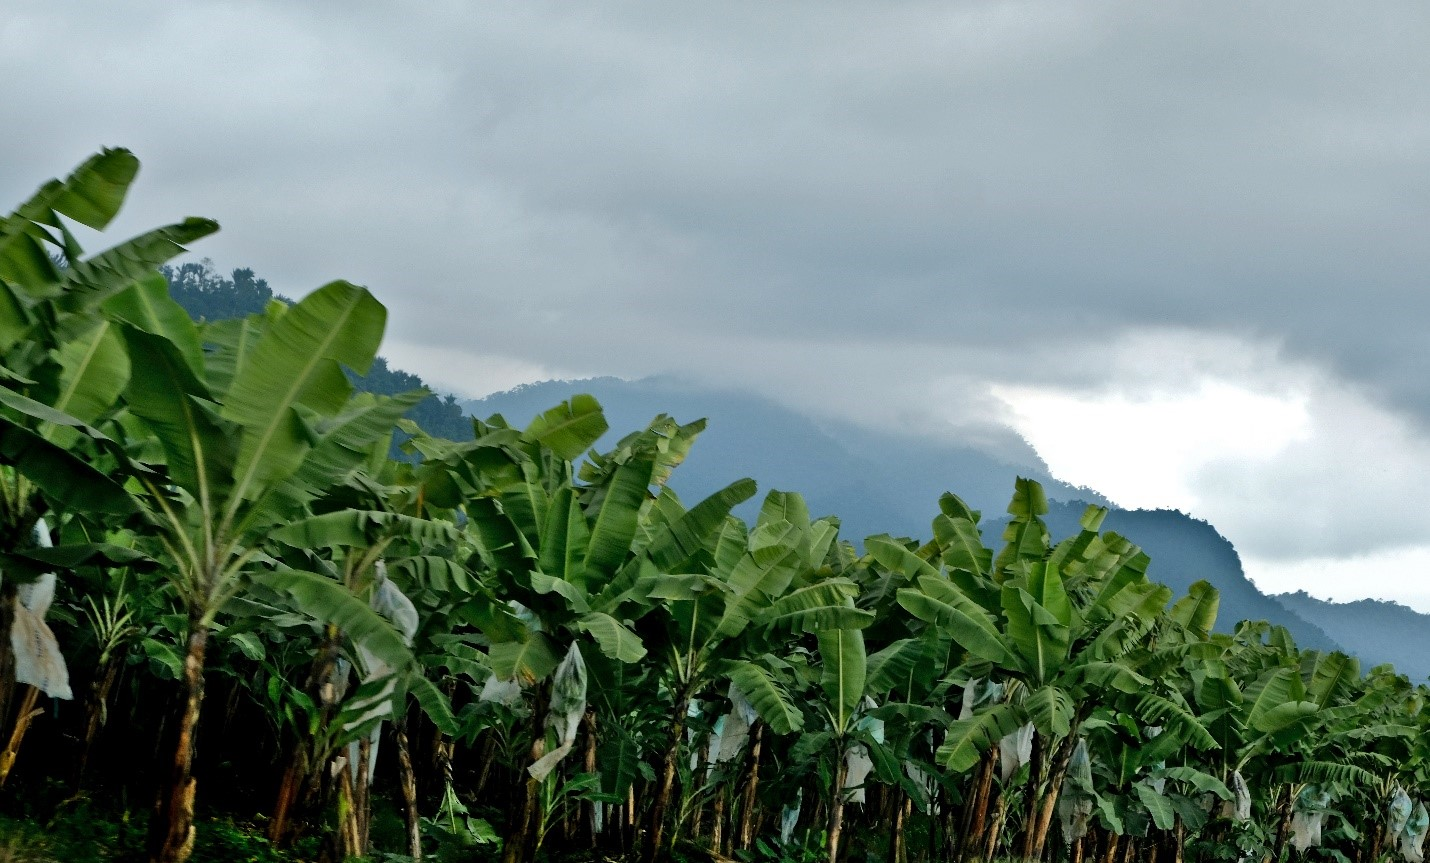 El Oro Ecuador roadside banana cultivation